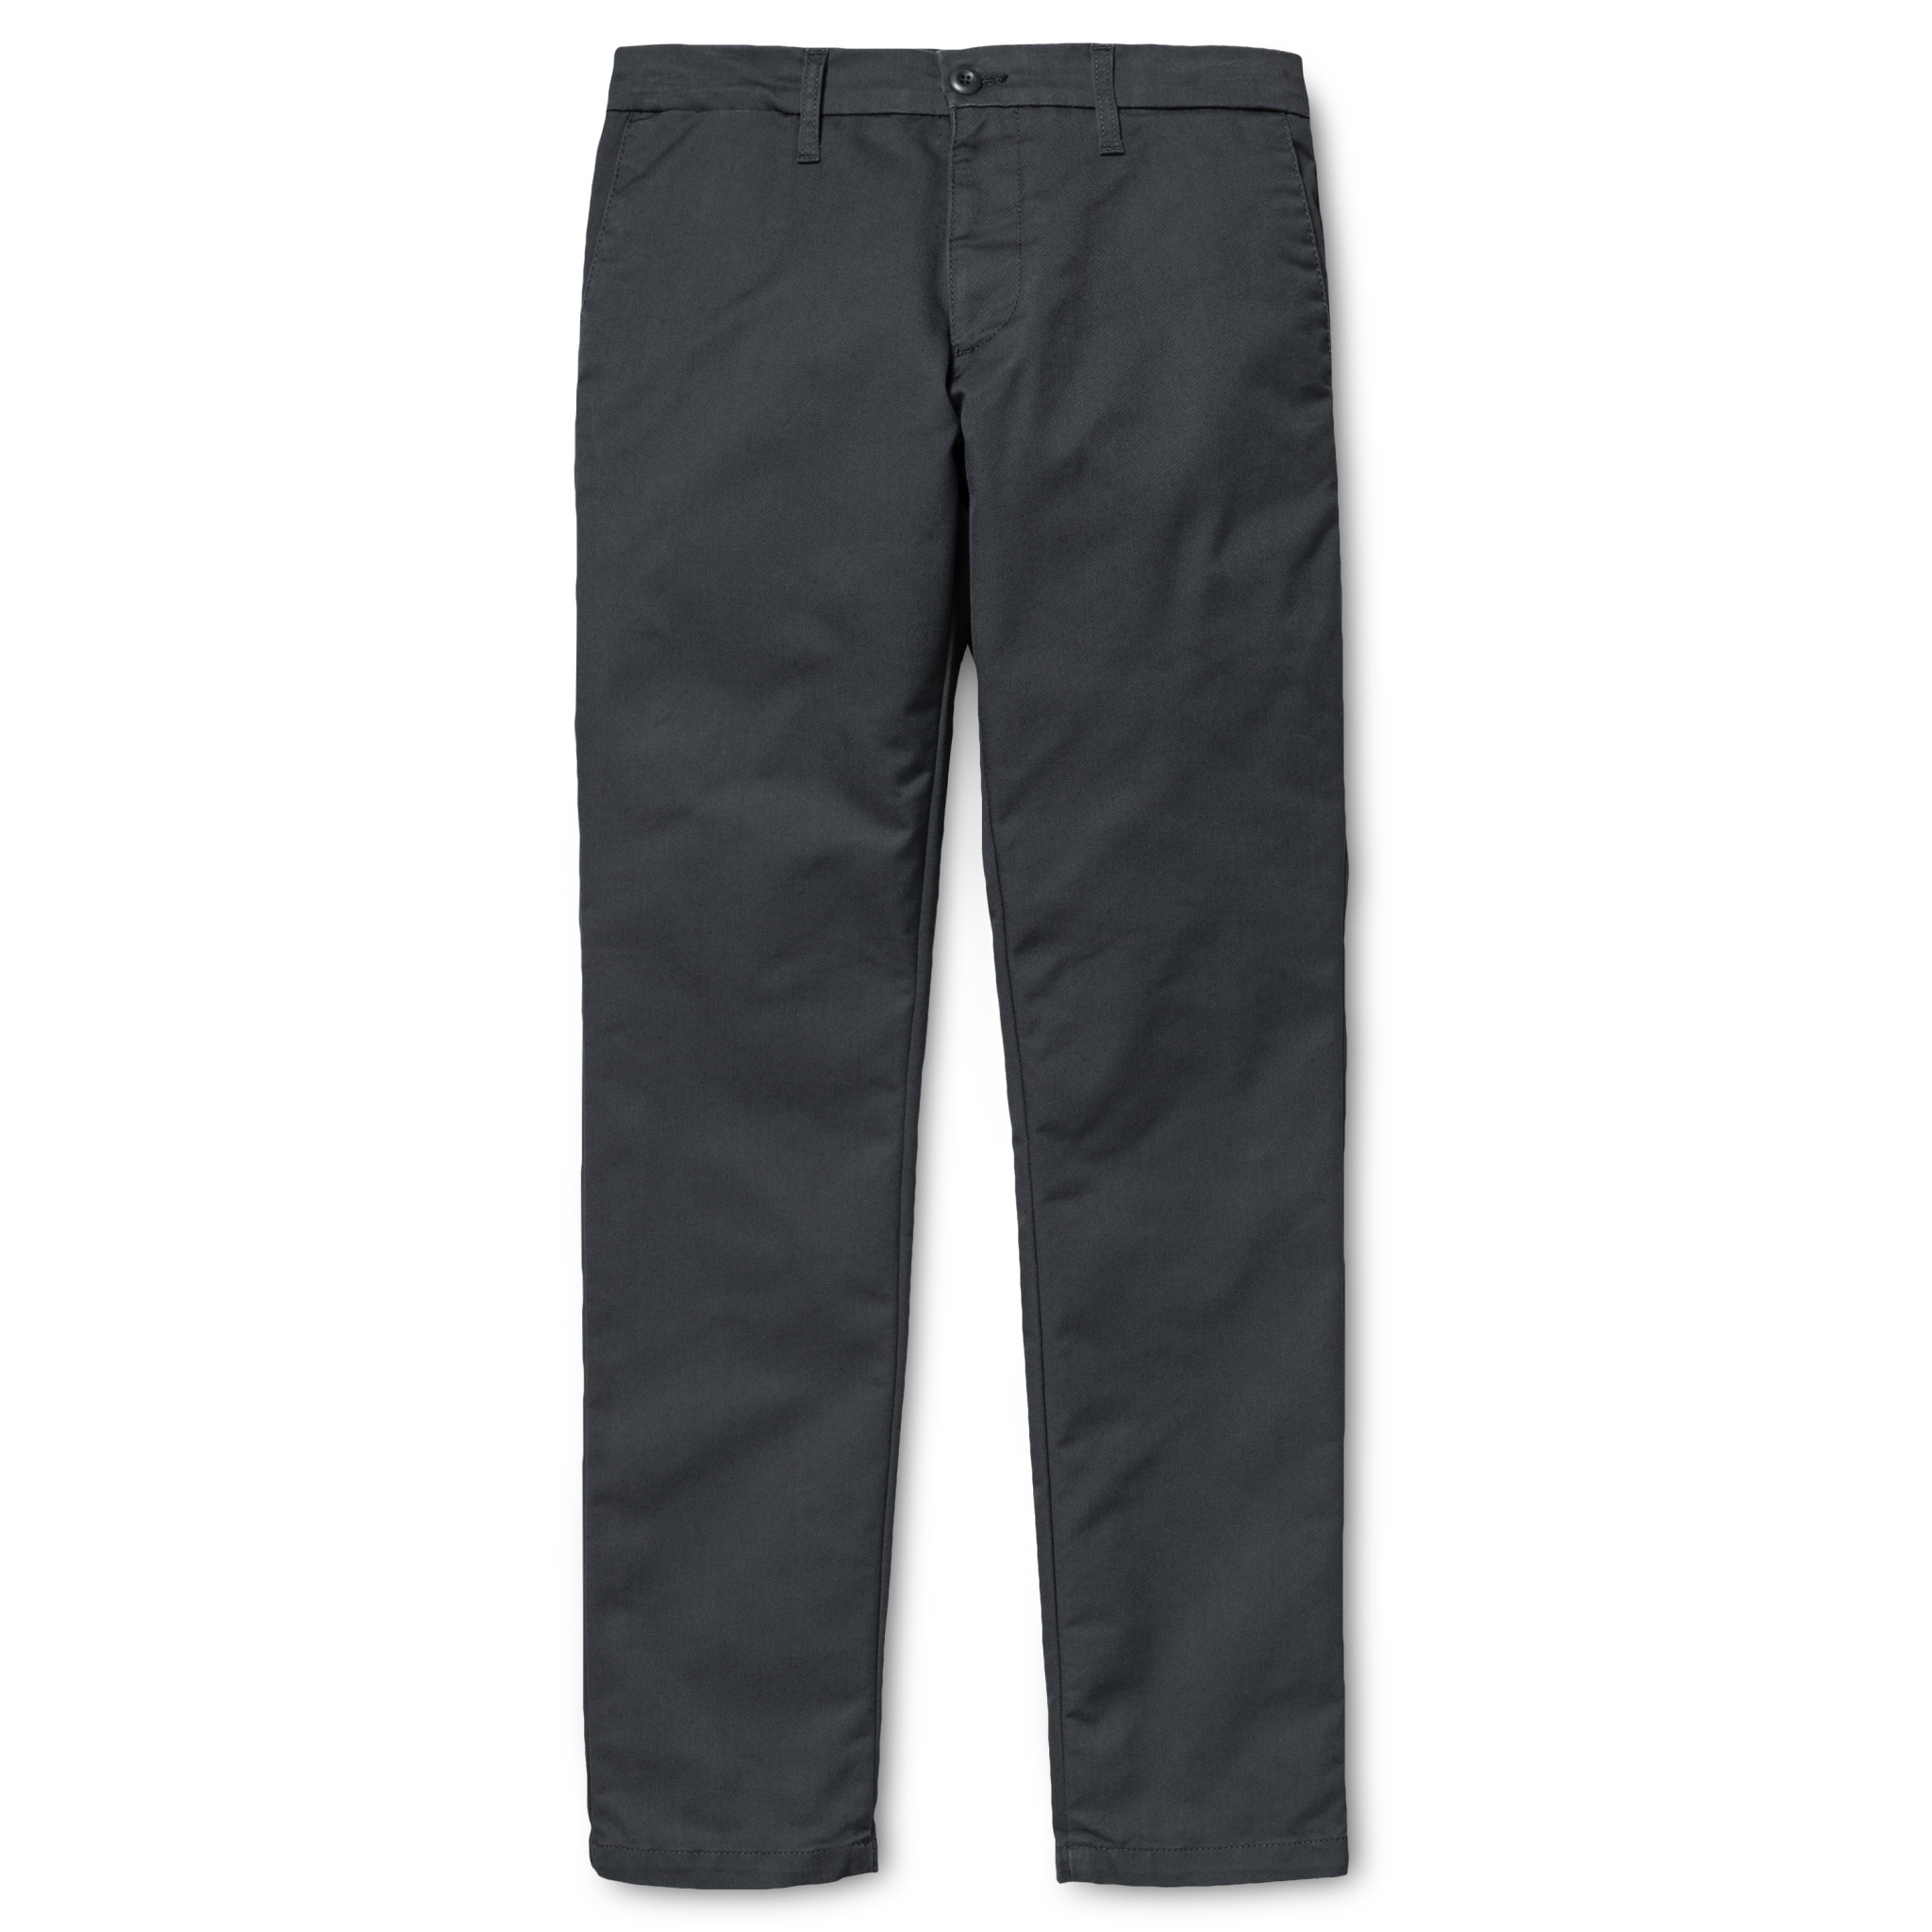 Carhartt Work In Progress Carhartt WIP Sid Pant in Blacksmith